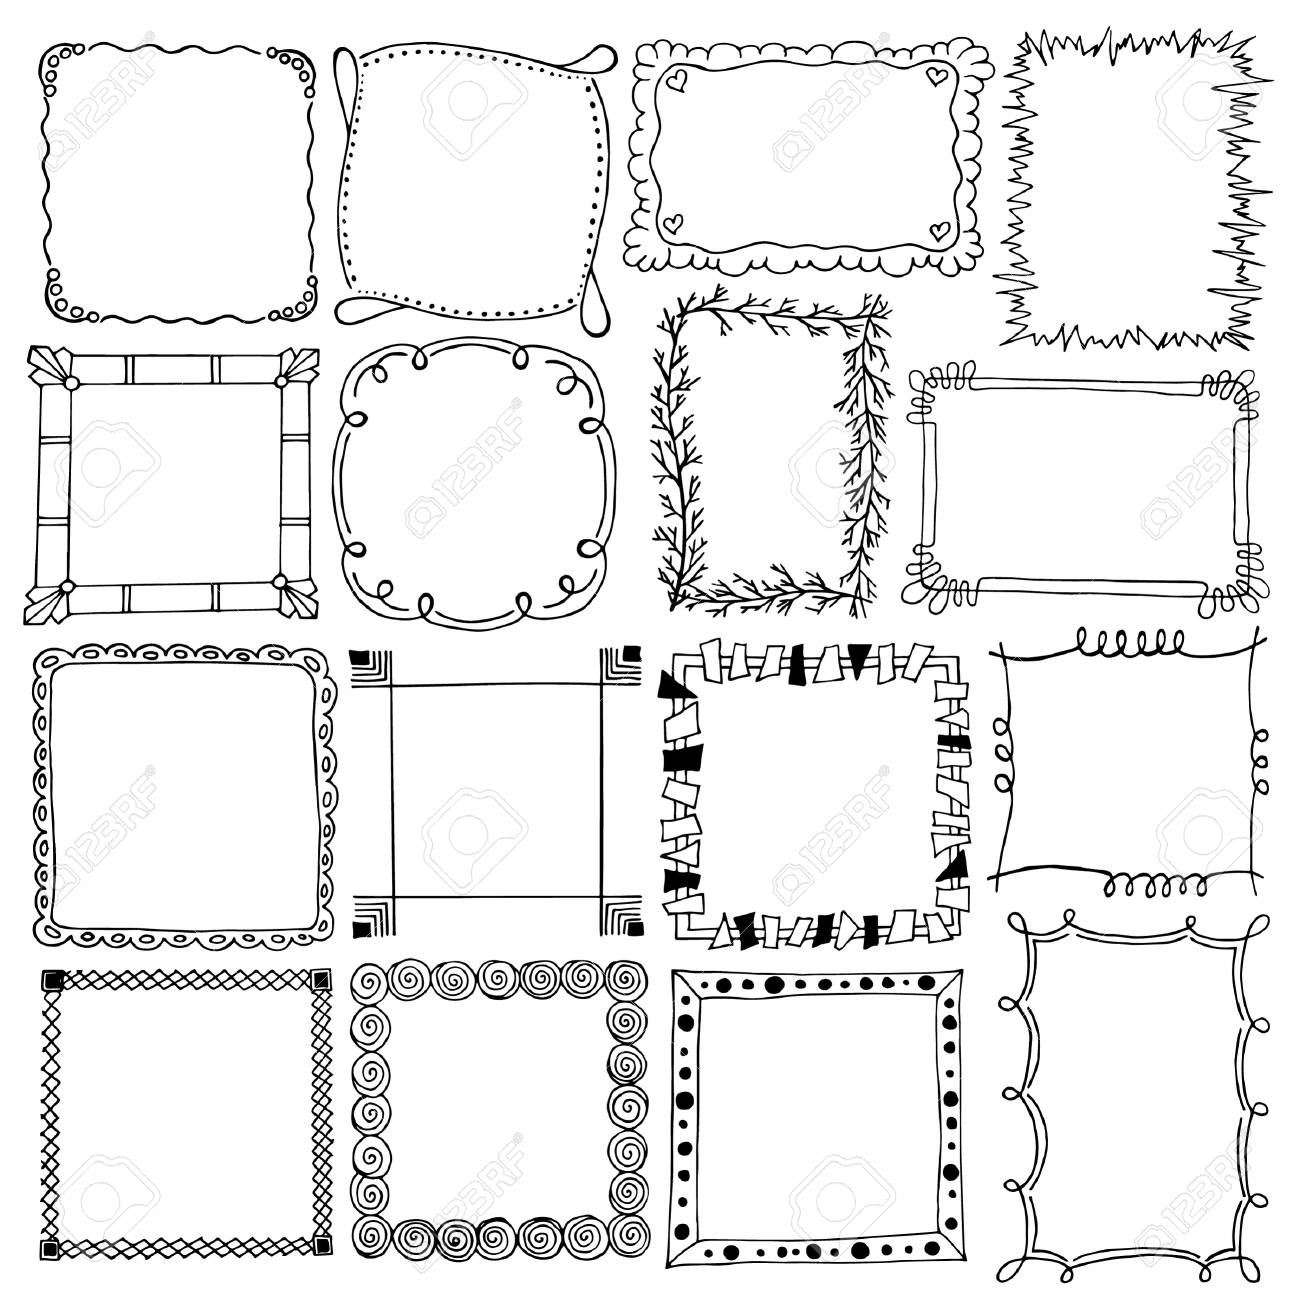 Decorative Frames Ornament Black And White Sketches Hand Drawing